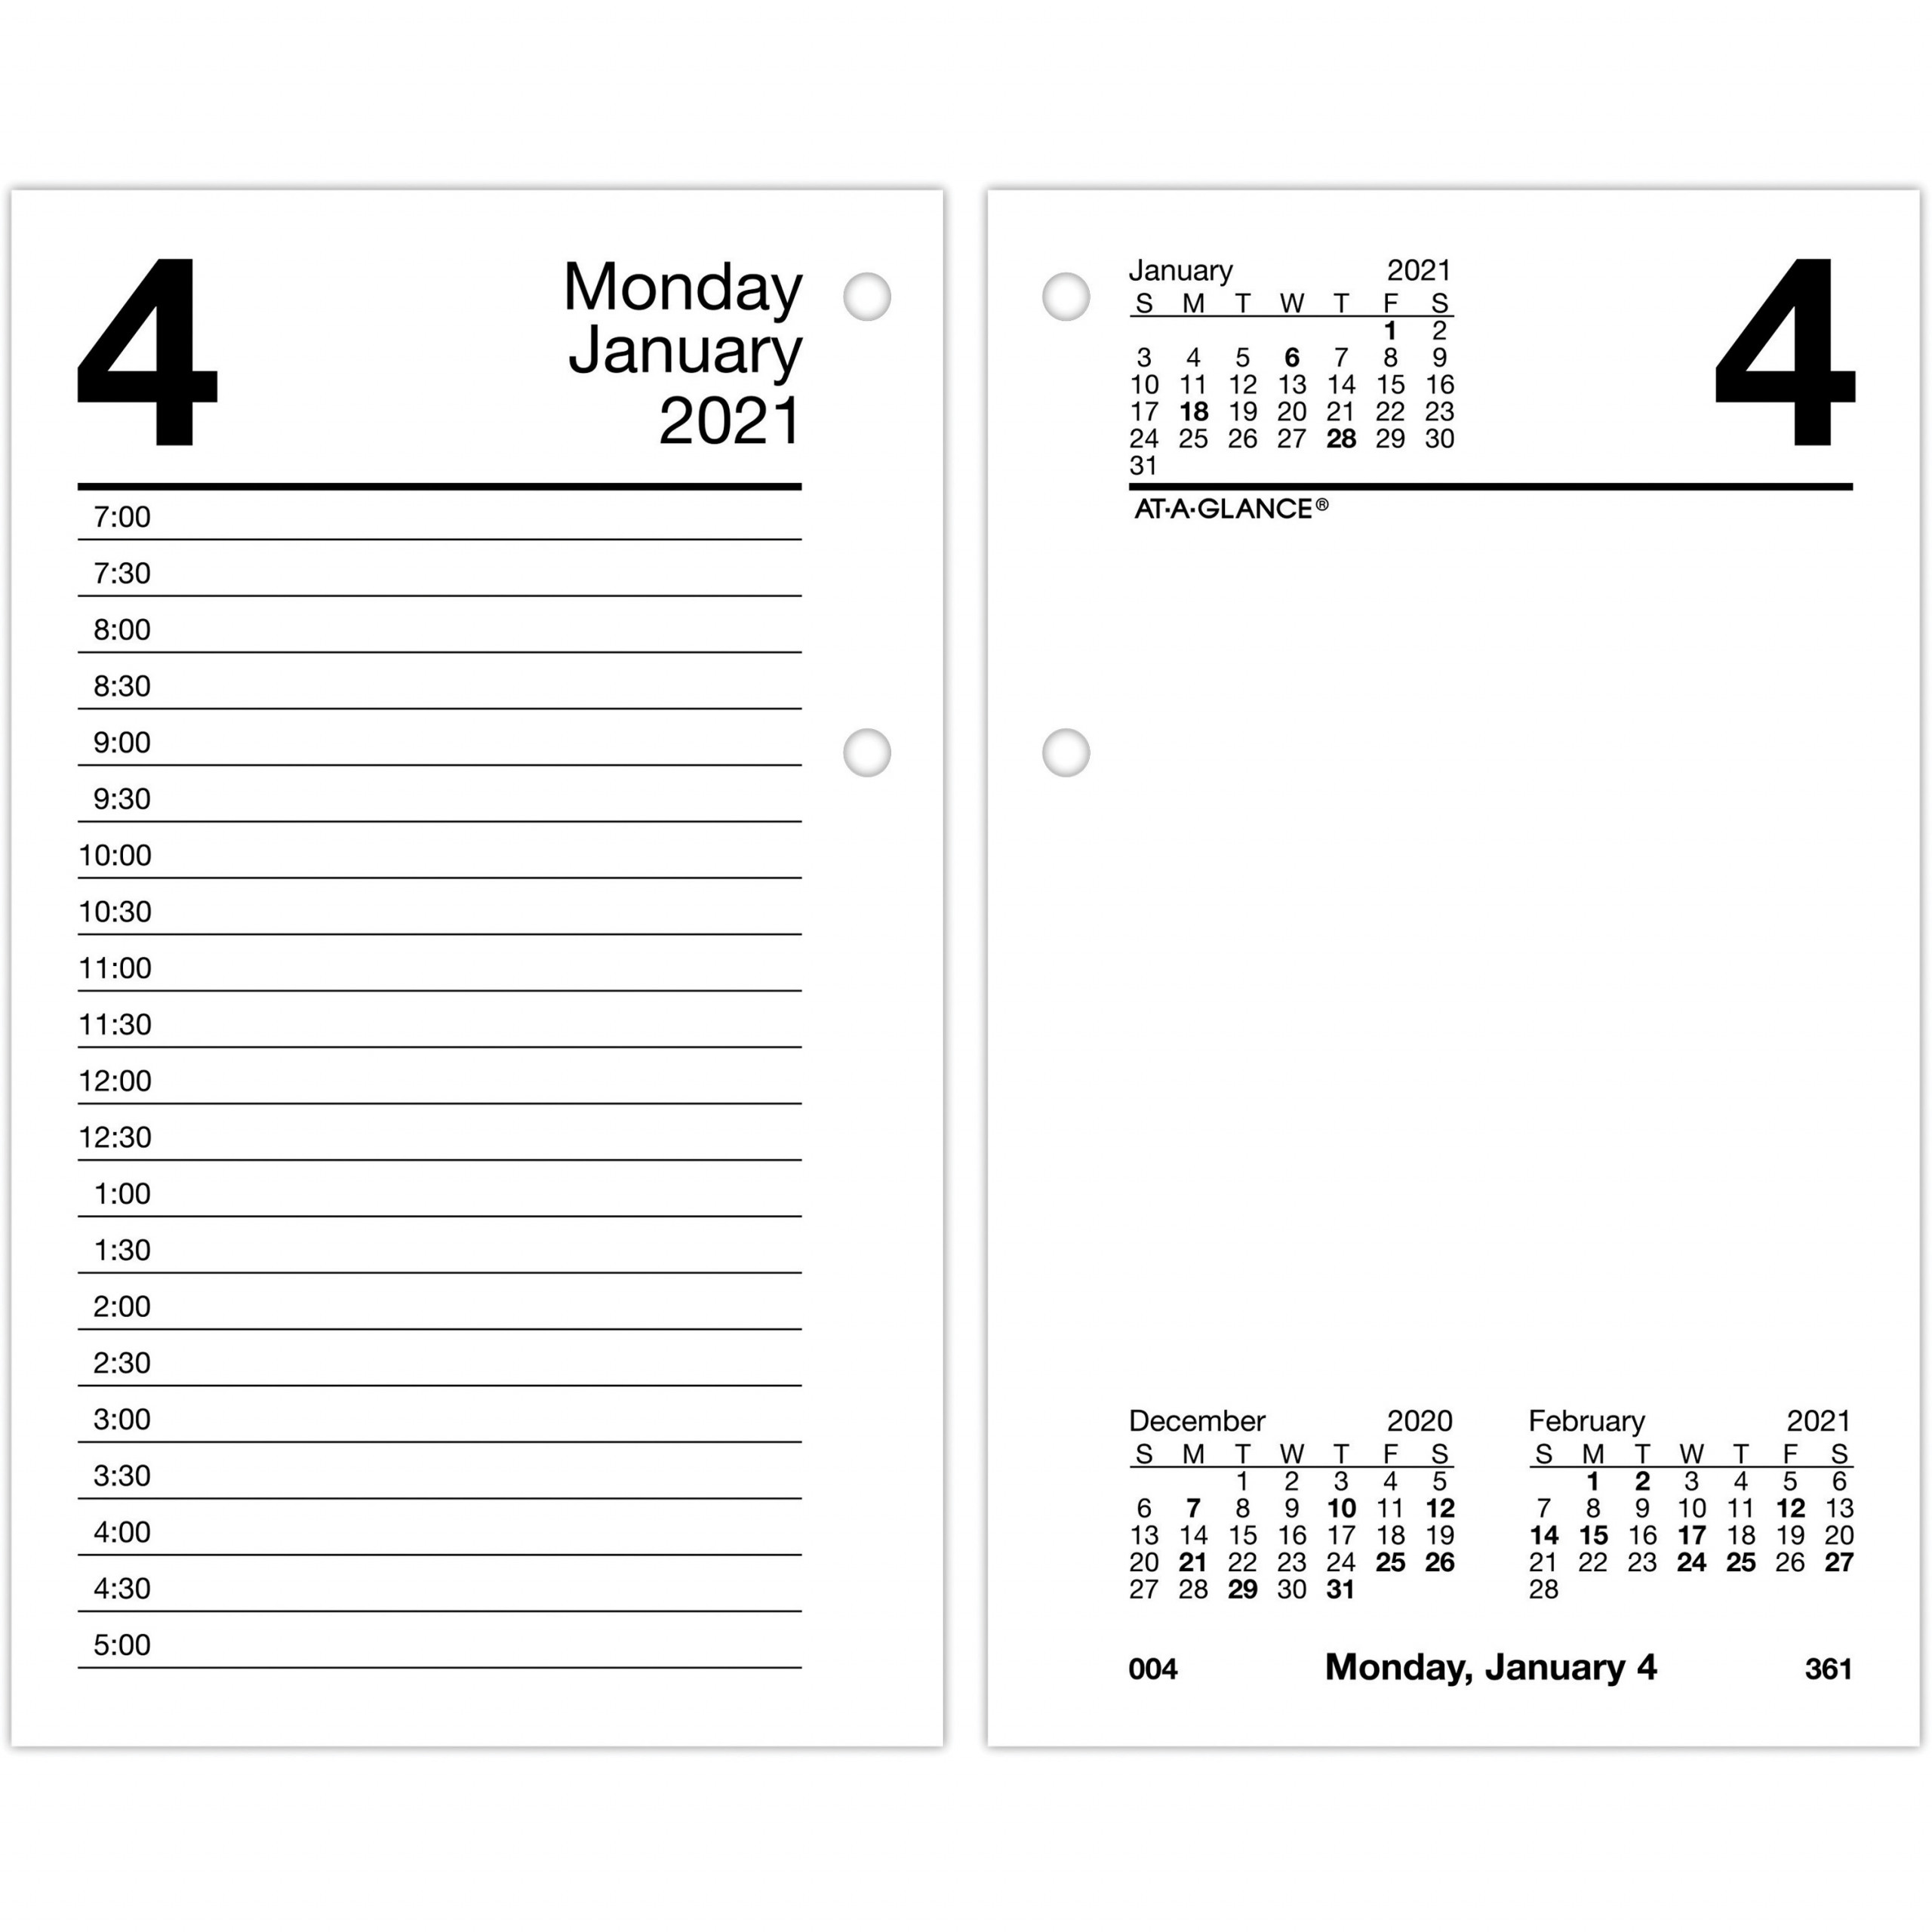 At A Glance Recycled Desk Calendar Refill Julian Dates Daily Monthly 1 Year January 2021 till December 2021 7 00 AM to 5 00 PM AAGE717R50x